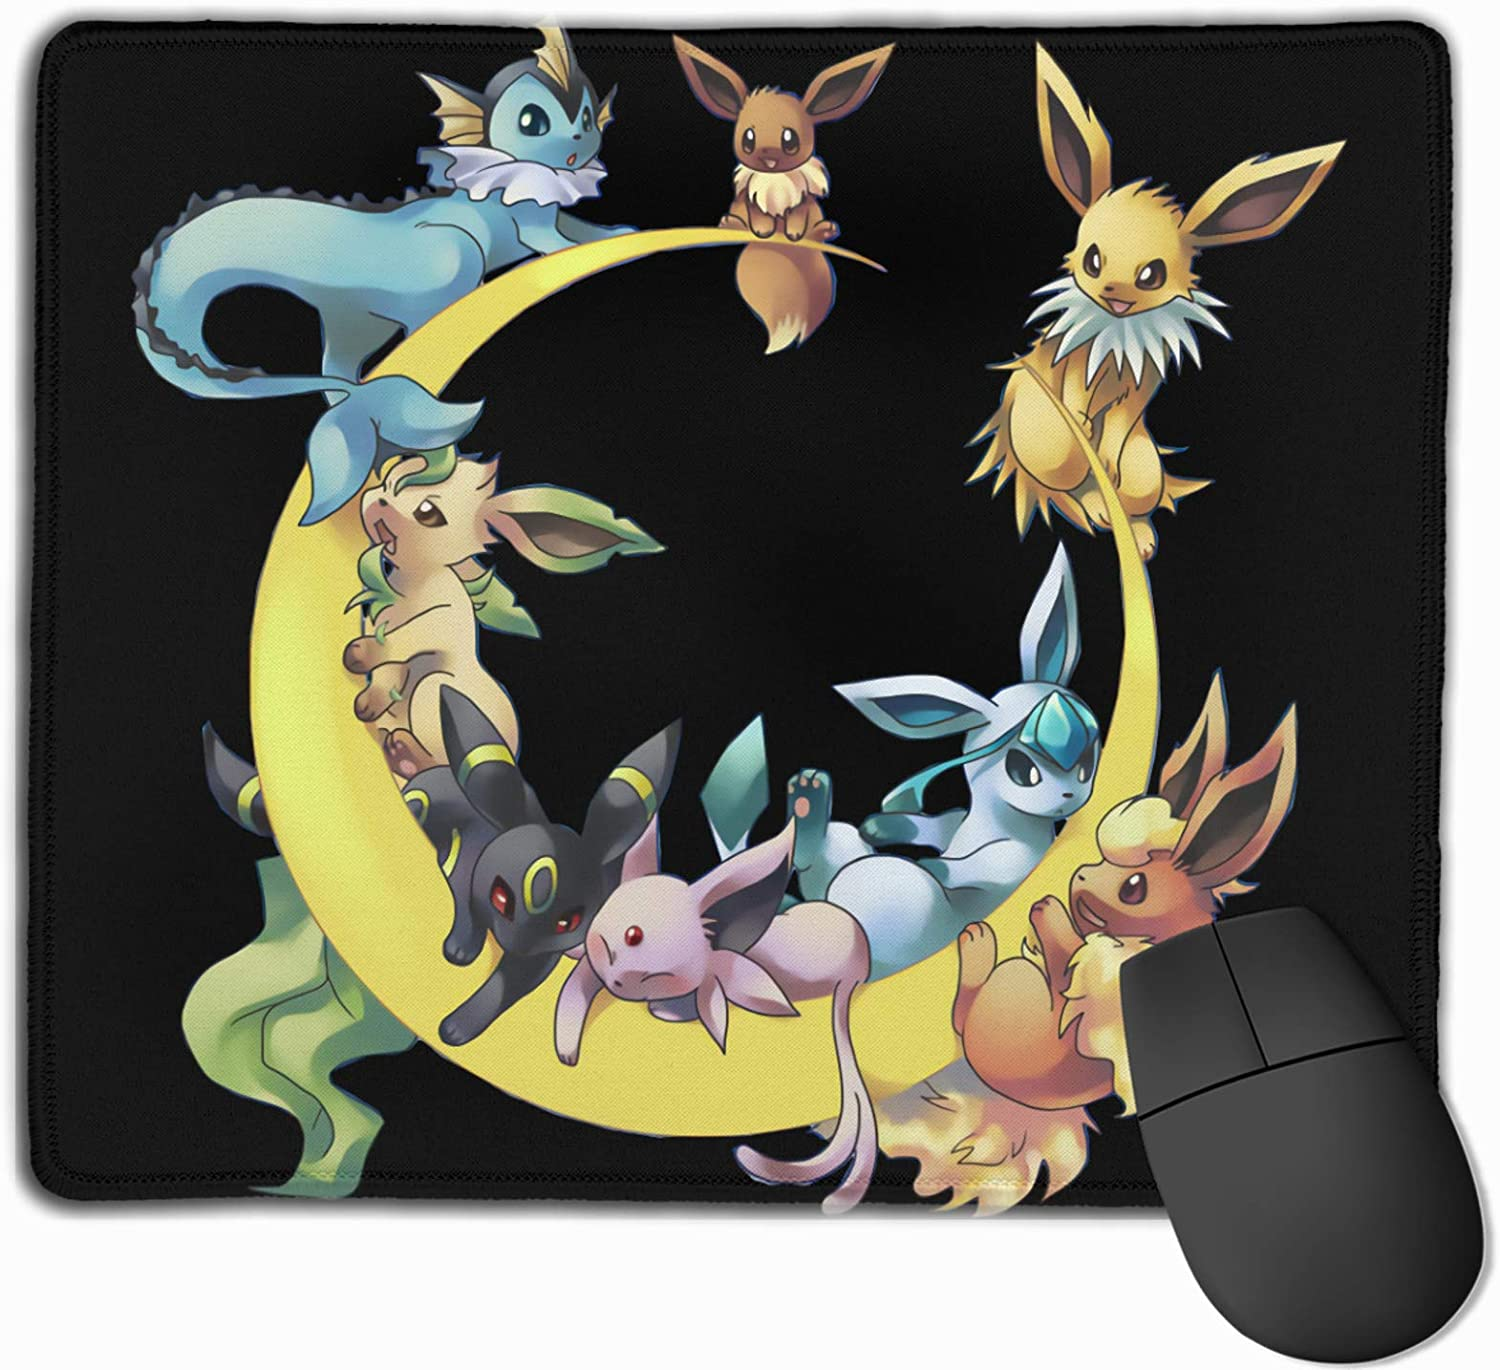 Ee-Vee Non Slip Rubber Mouse Pad 9.8 X 11.8 Inches